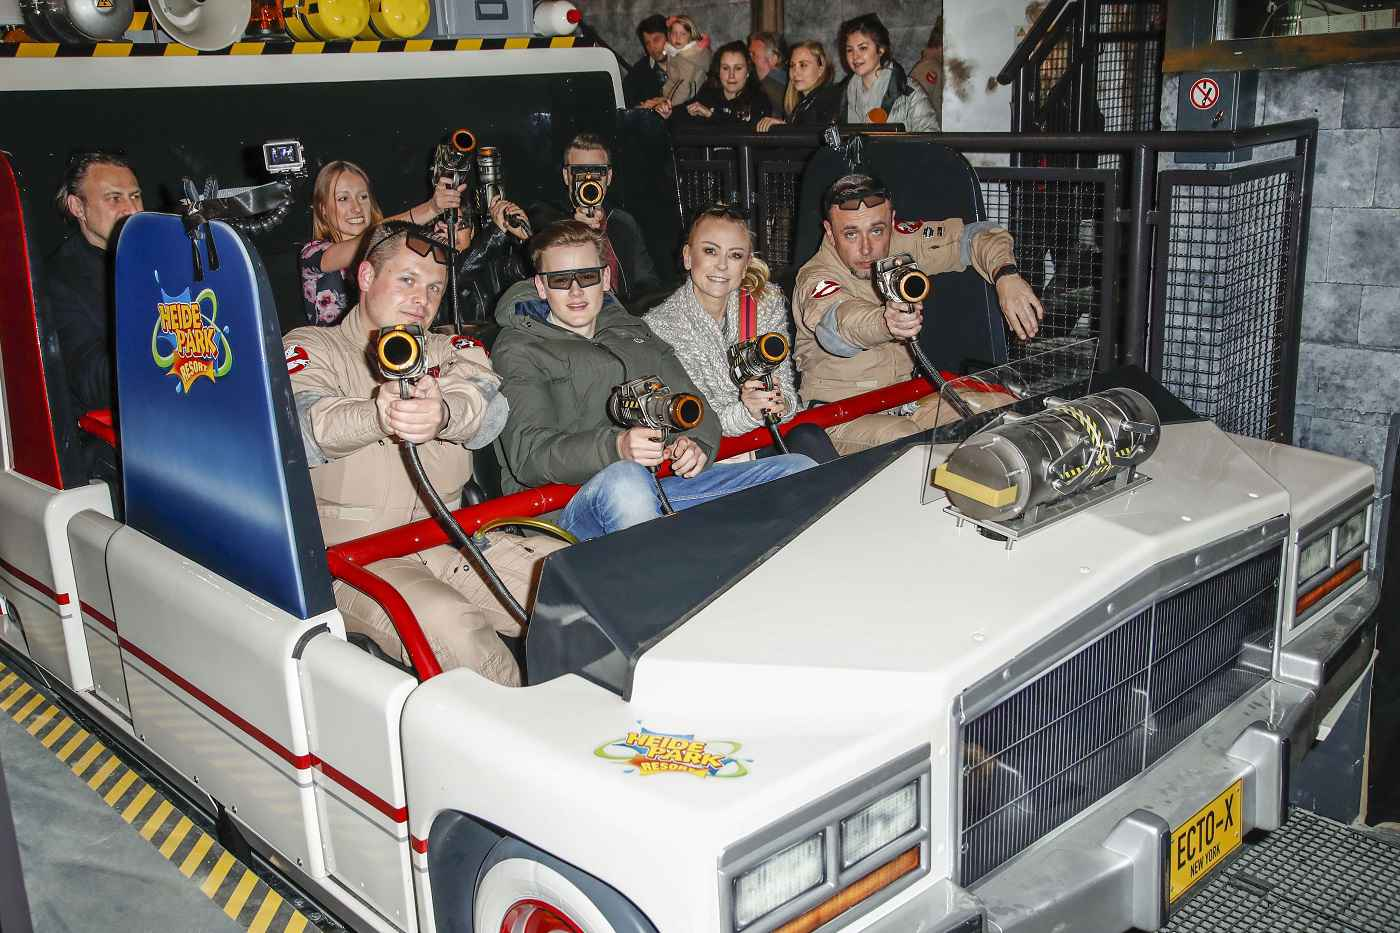 Triotech celebrates VIP opening of Ghostbusters 5D ride at Heide Park